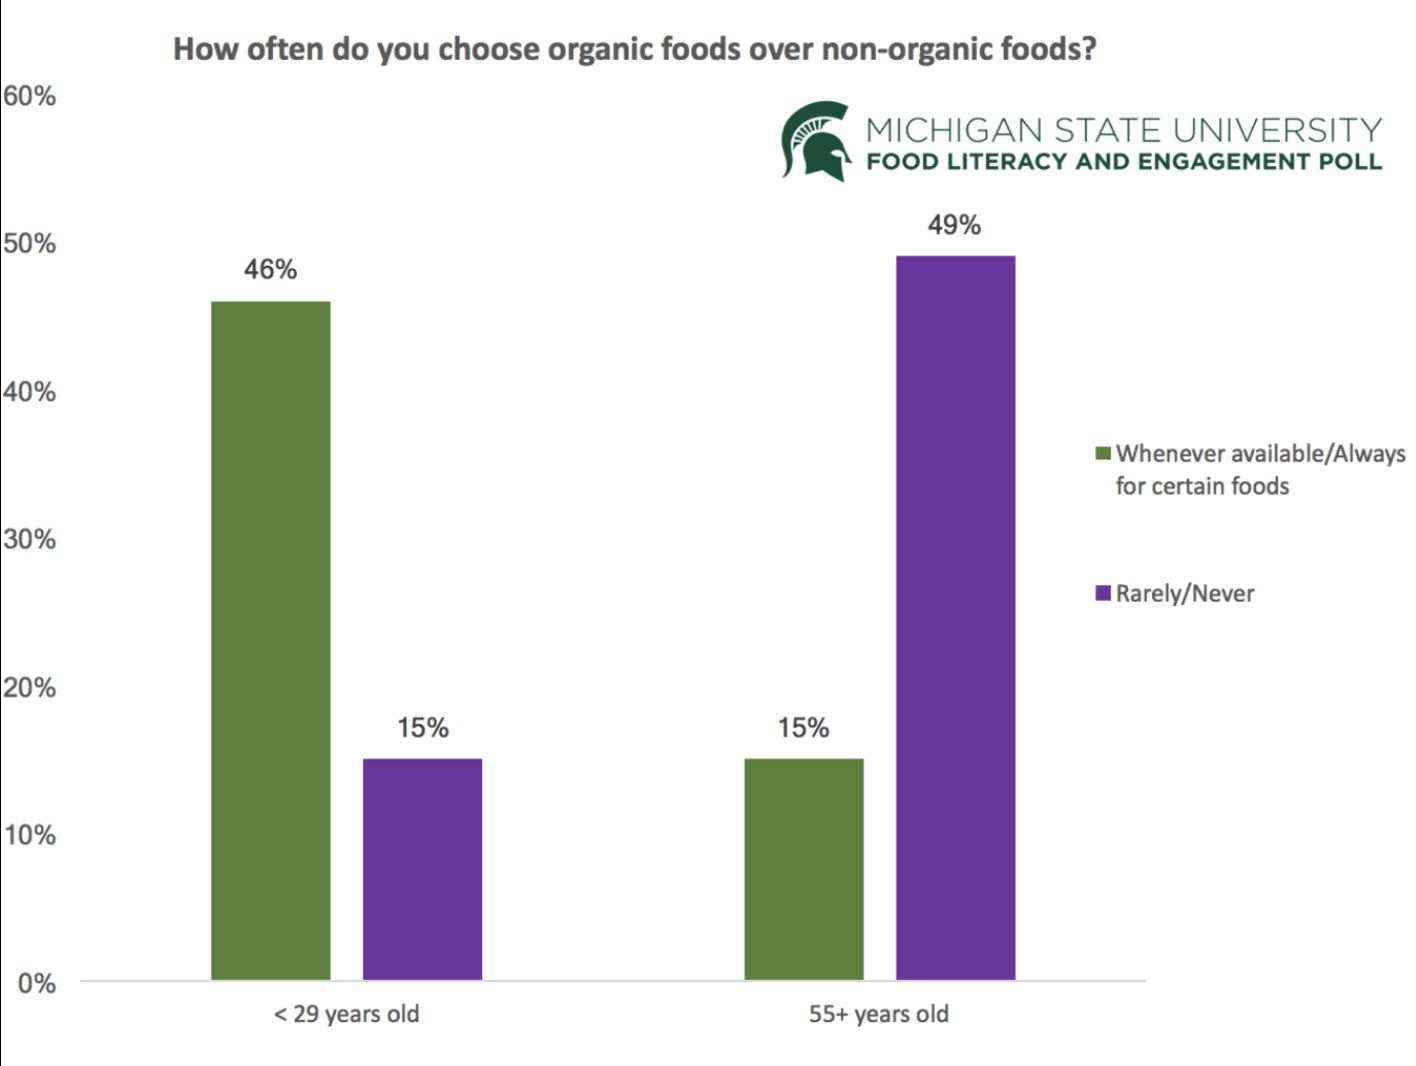 Younger and older Americans have different attitudes about choosing organic food. - Image Credit: Michigan State University,  CC BY-ND